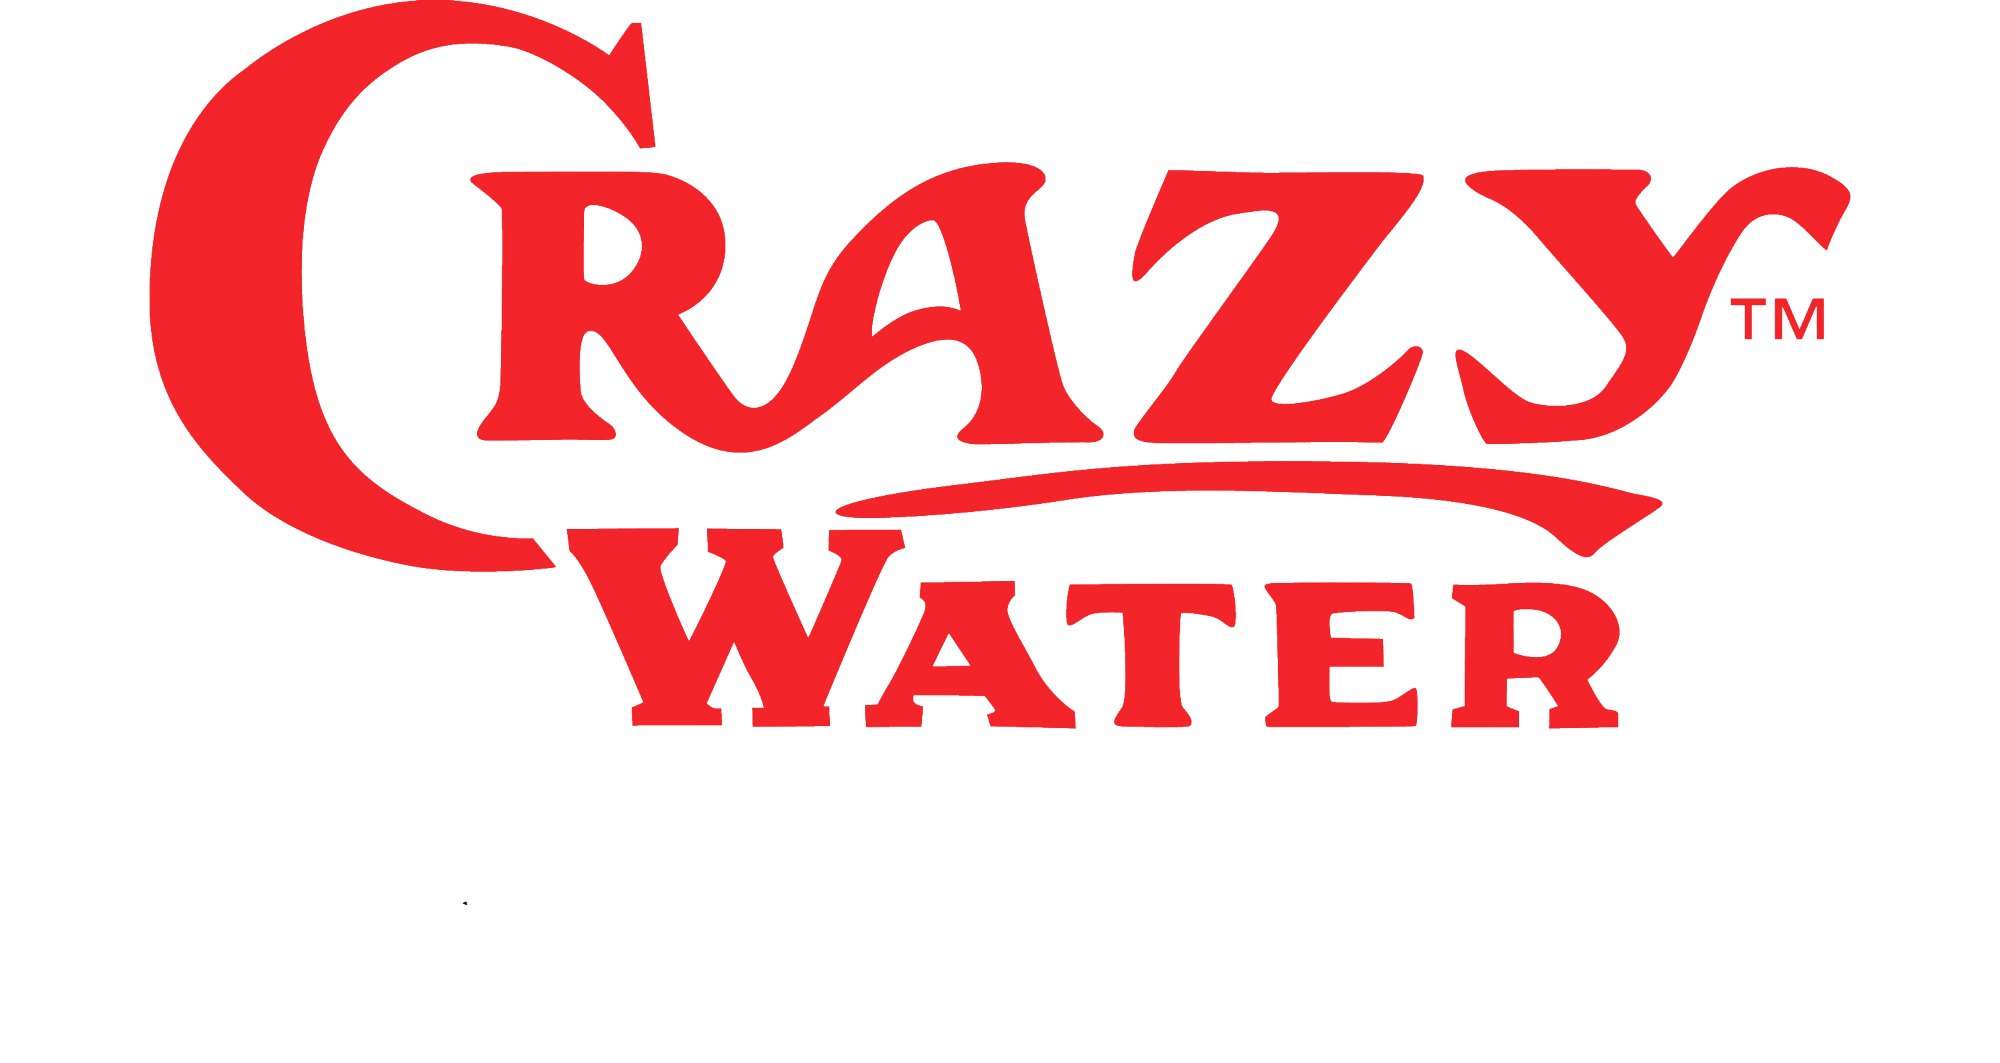 CrazyWaterLogPlainRed-1.png